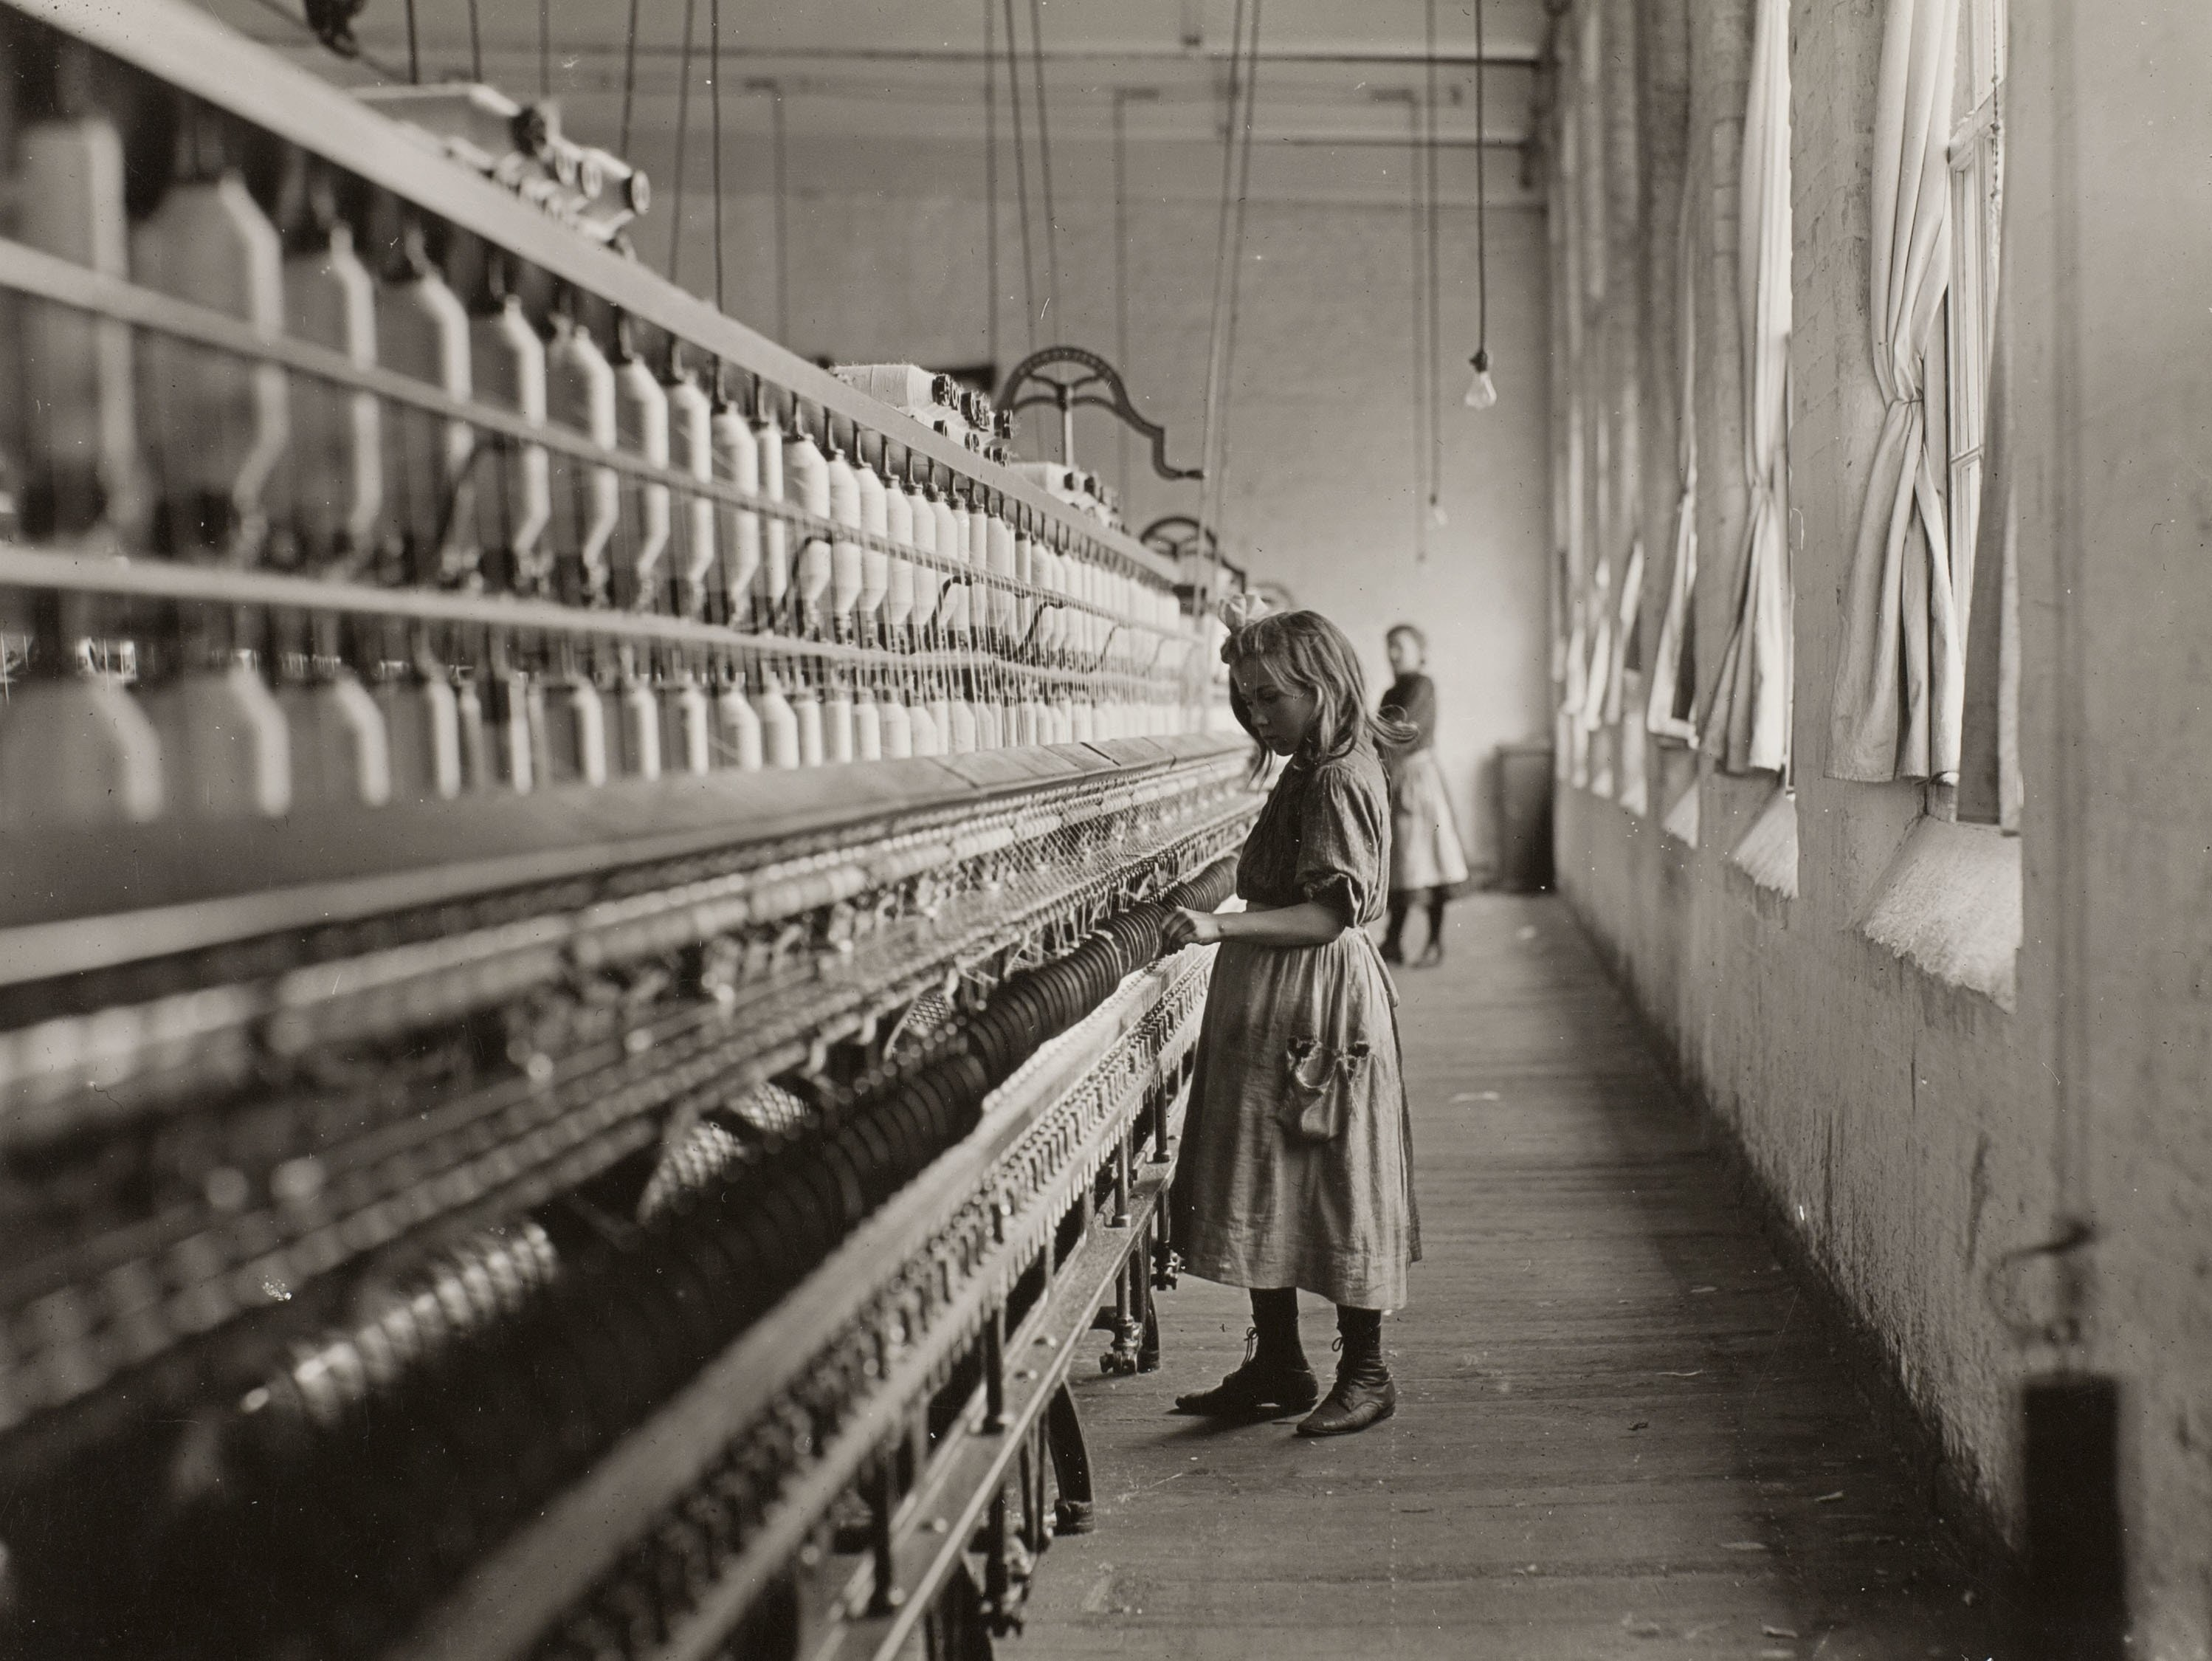 A young girl works in a factory.